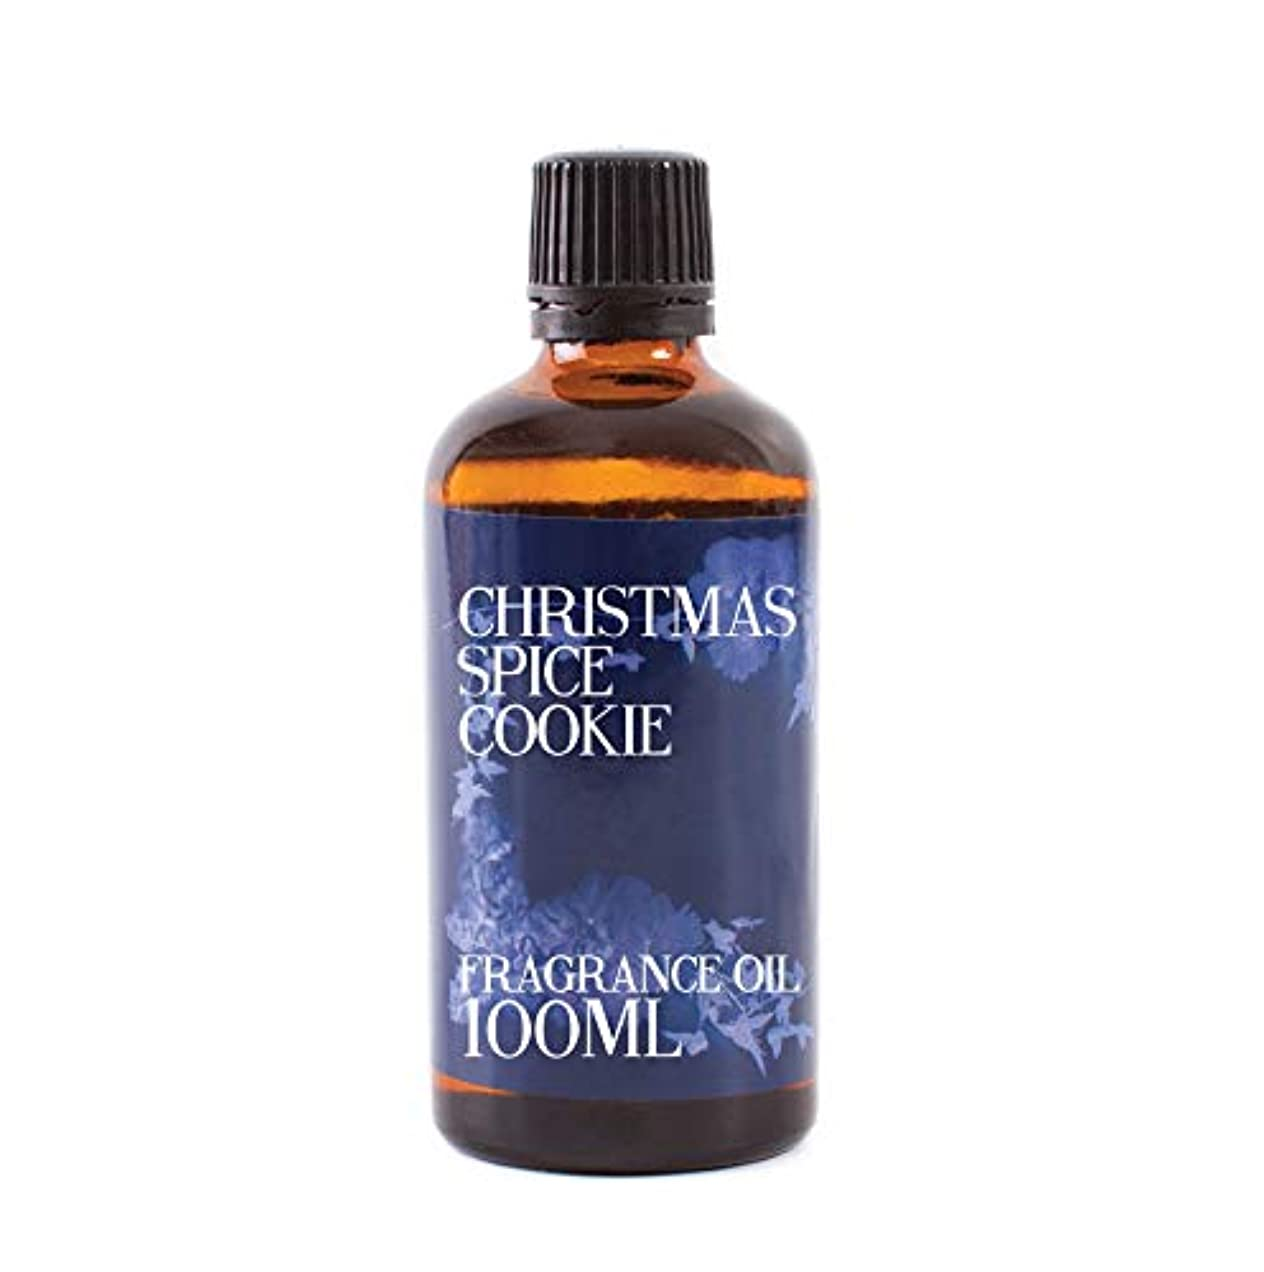 キャンペーン持続する宇宙船Mystic Moments | Christmas Spice Cookie Fragrance Oil - 100ml